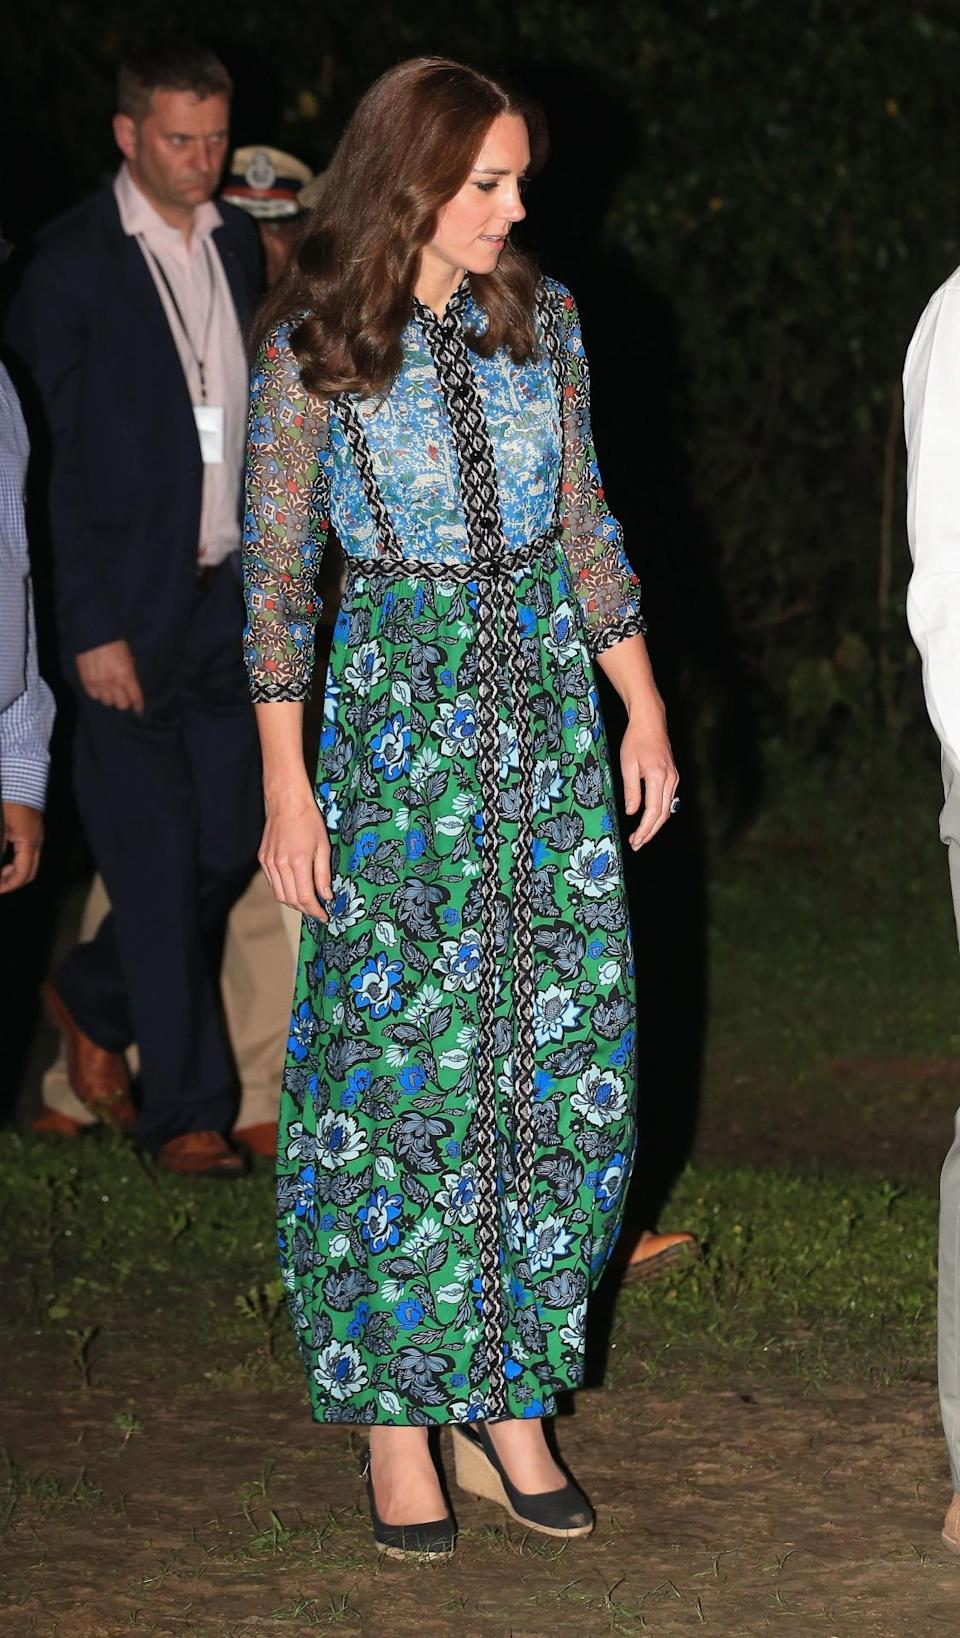 <p>A lightweight floral gown by Anna Sui was Kate's outfit of choice for a festival celebration in India. She paired the dress with the same black Dune wedges worn throughout the royal tour. </p><p><i>[Photo: PA]</i></p>